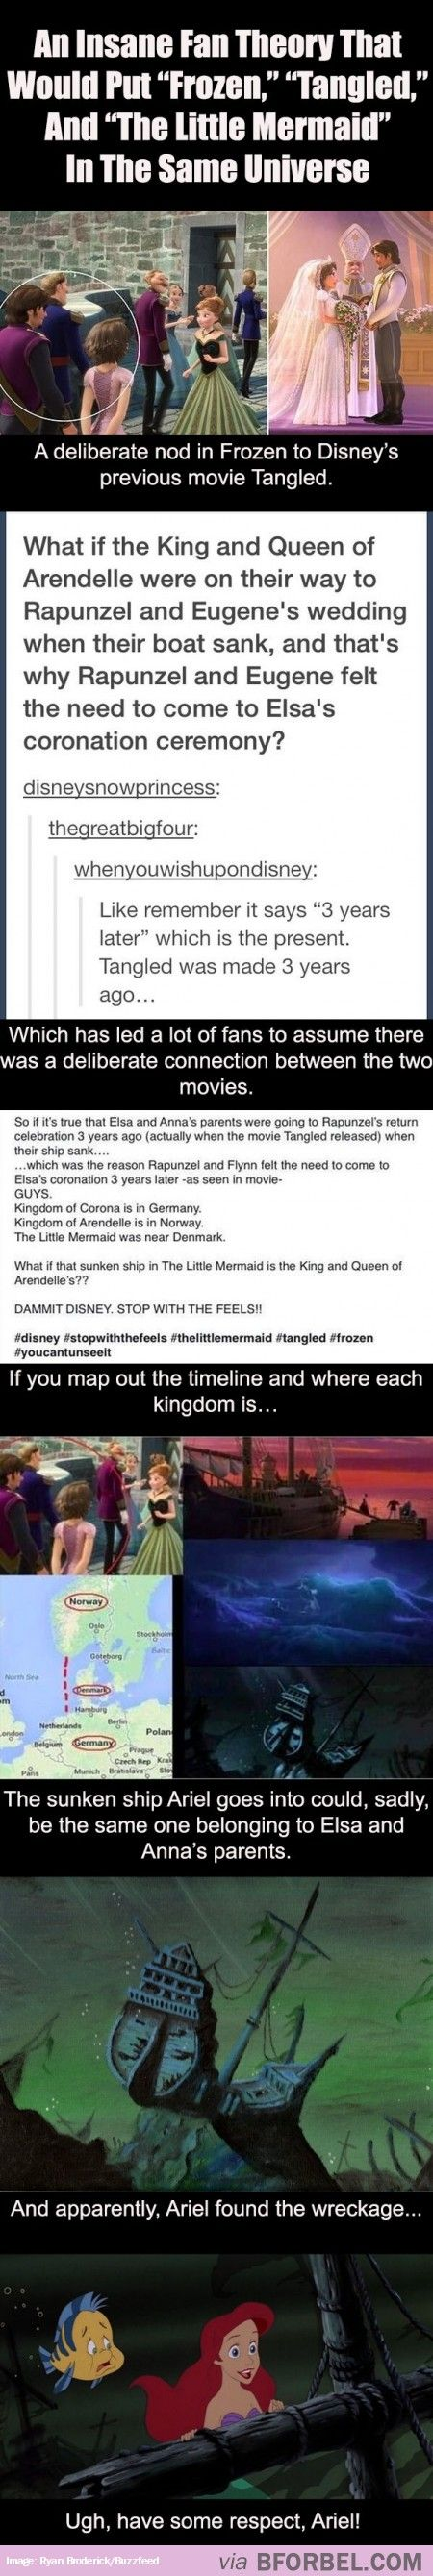 "Now ""The Little Mermaid"" Is Involved With ""Frozen"" And ""Tangled"" Too?"